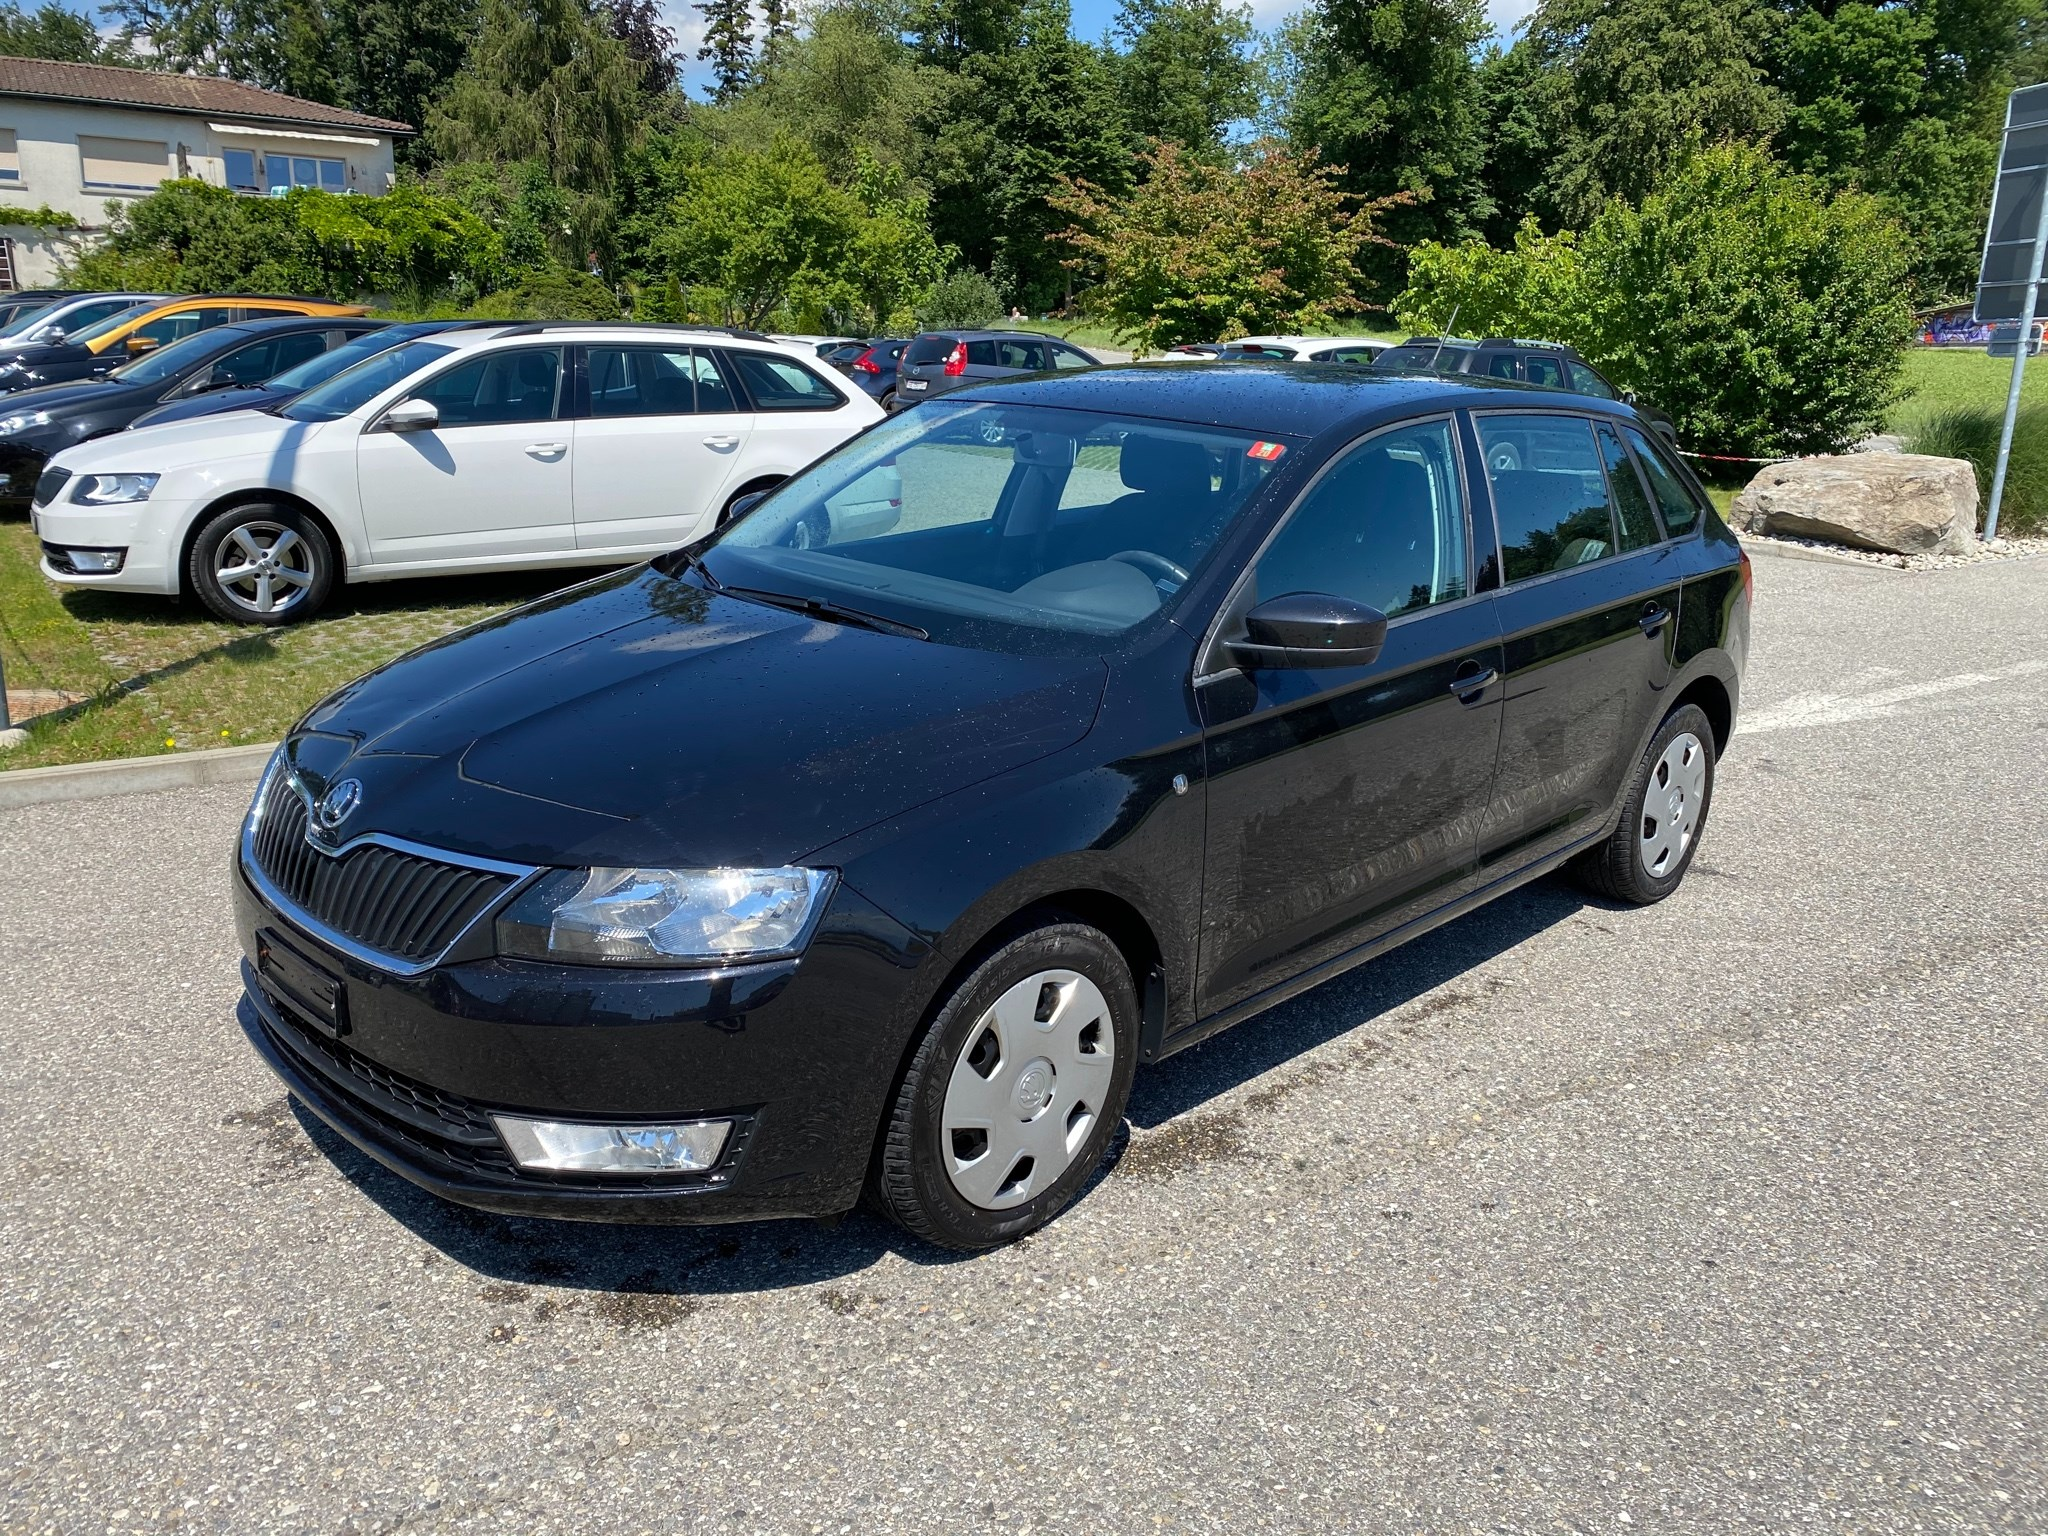 estate Skoda Rapid Spaceback 1.4 TSI Ambition DSG